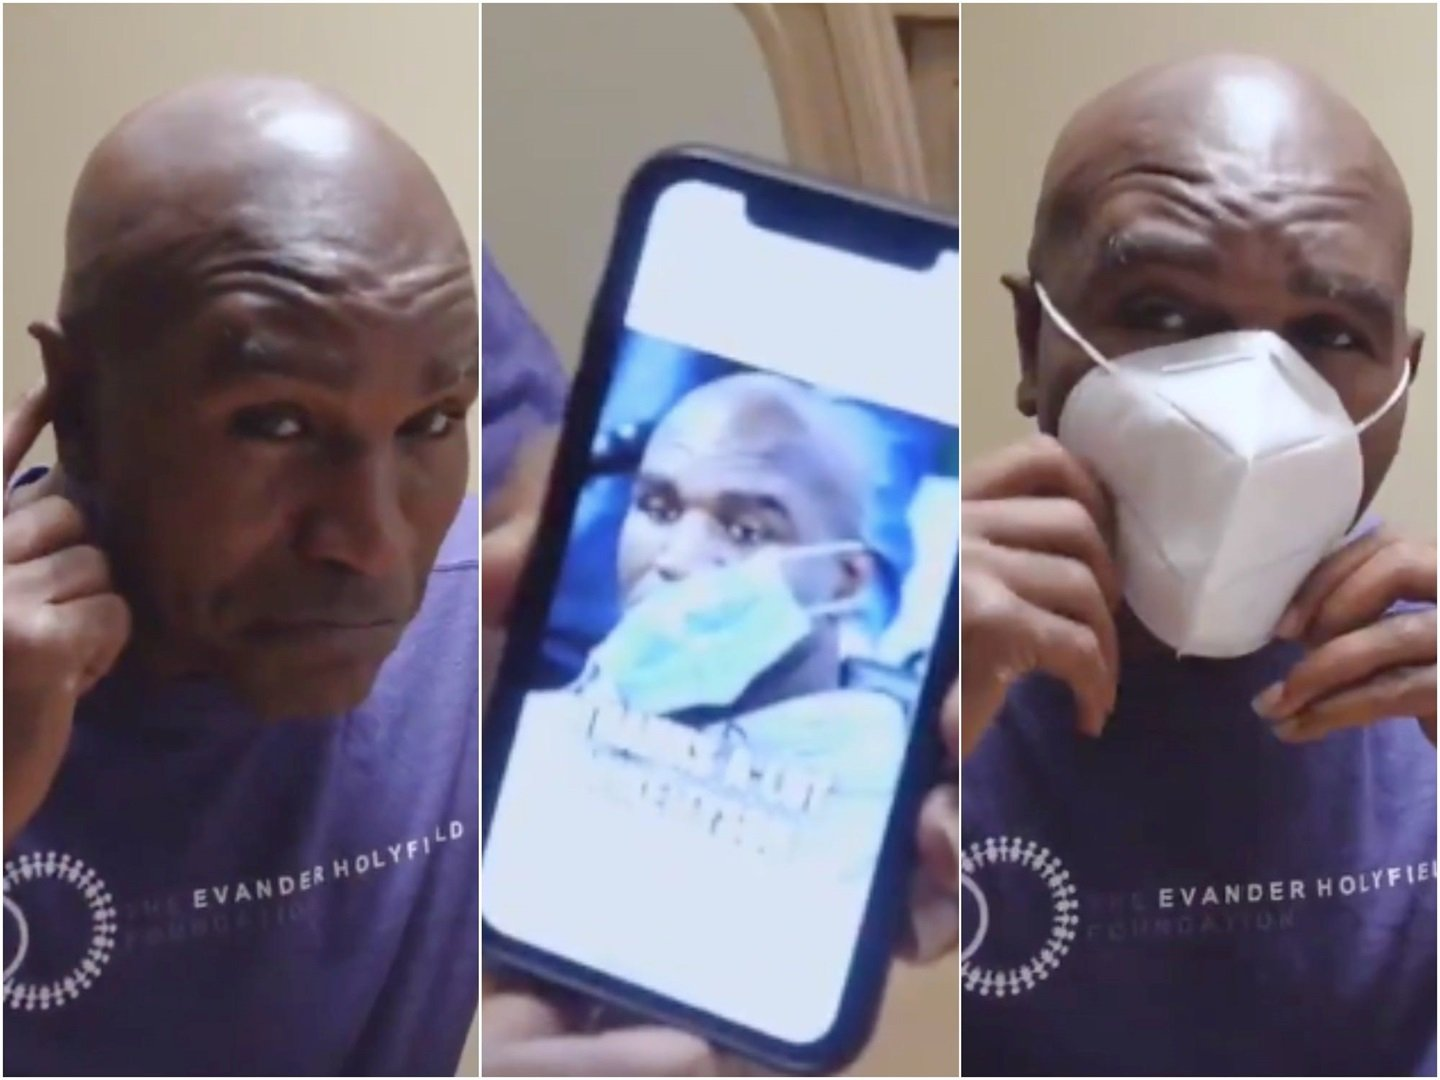 Evander Holyfield debunked meme that he can't wear Covid masks after Mike Tyson bit his ear off - Business Insider South Africa